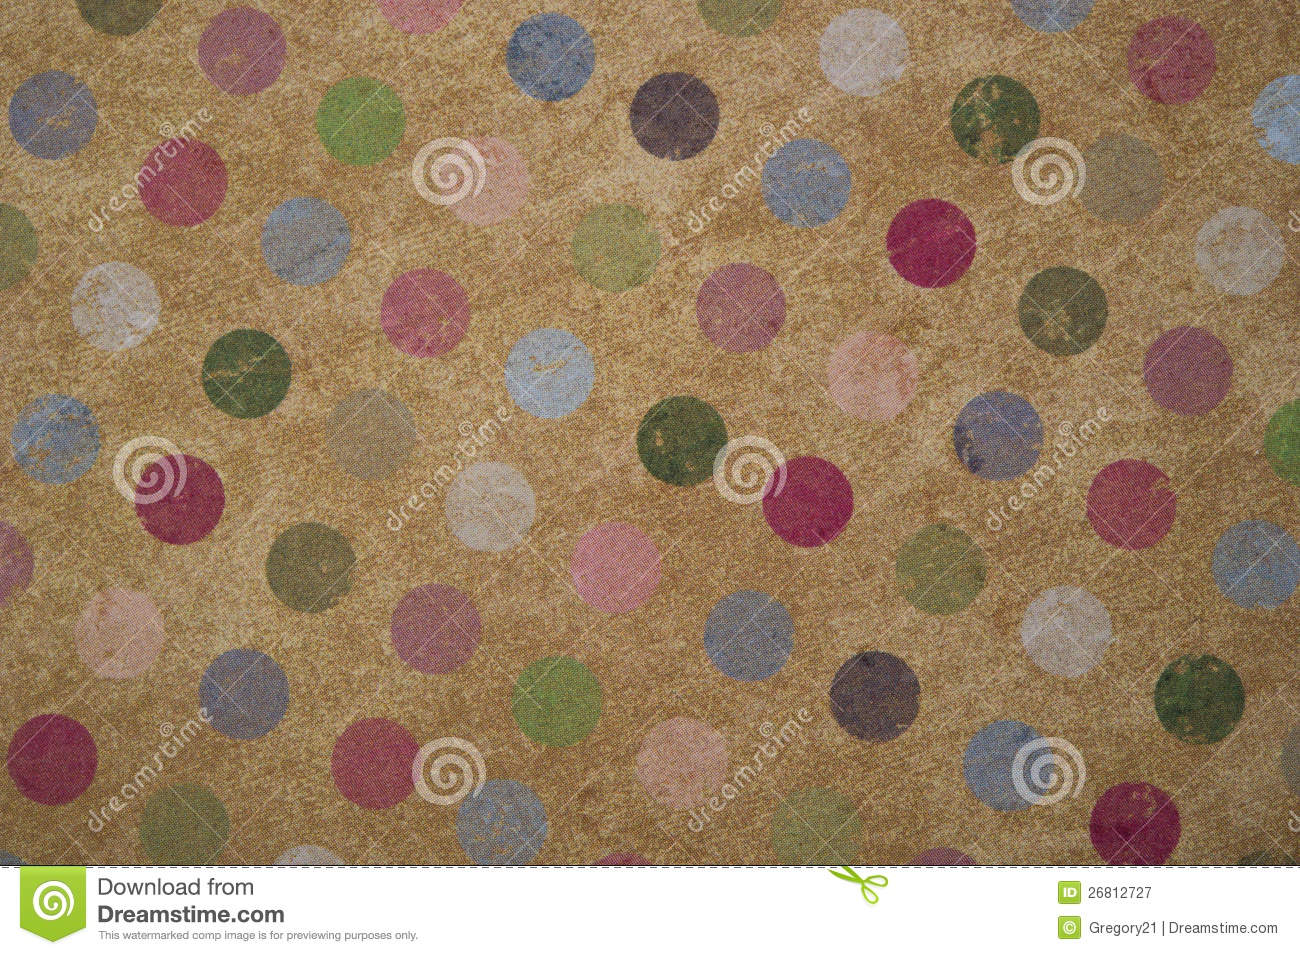 Vintage Polka Dot Background Royalty Free Stock Photography   Image